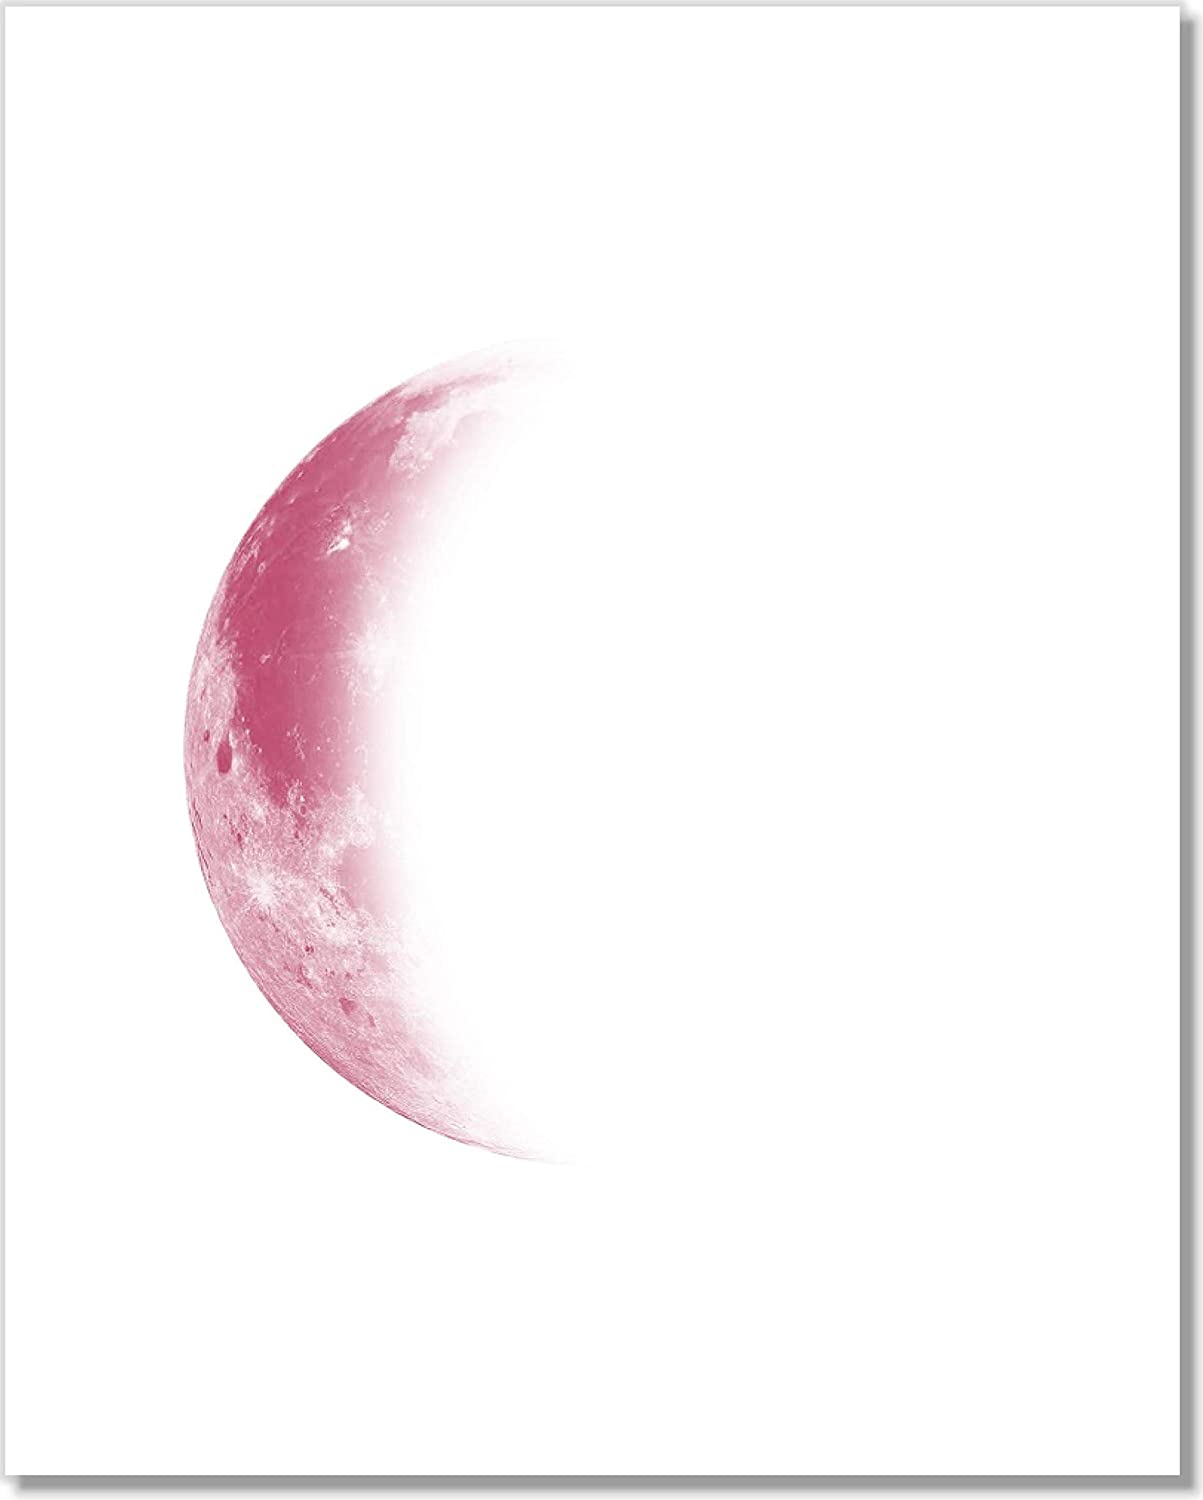 Moon Phases Art Prints Pink Moons Wall Decor Unframed 8x10 Set of 5